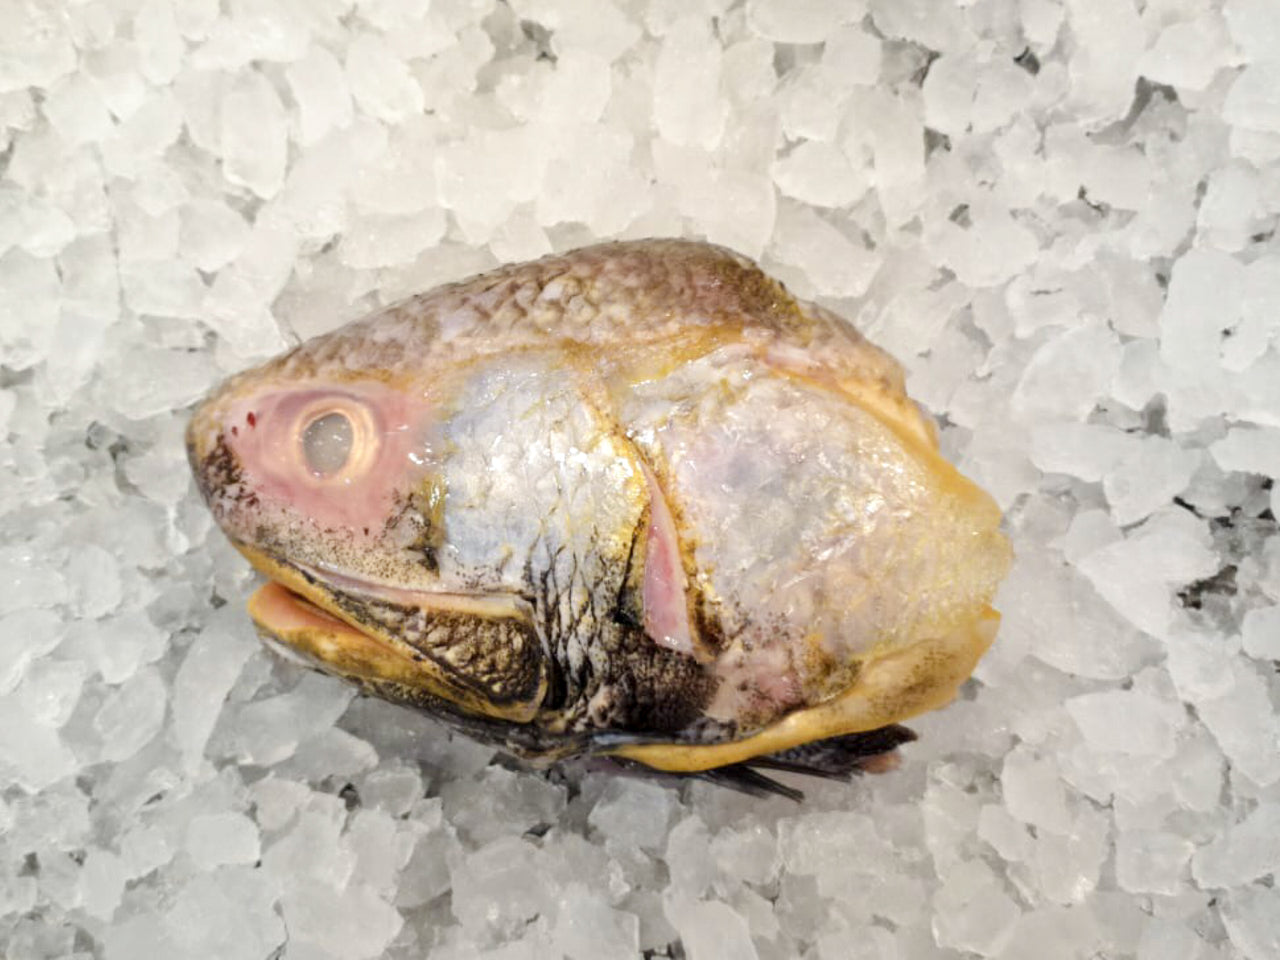 wild caught balai threadfin head dishthefish the new age fishmonger market online delivery fresh fish seafood singapore market fresh produces